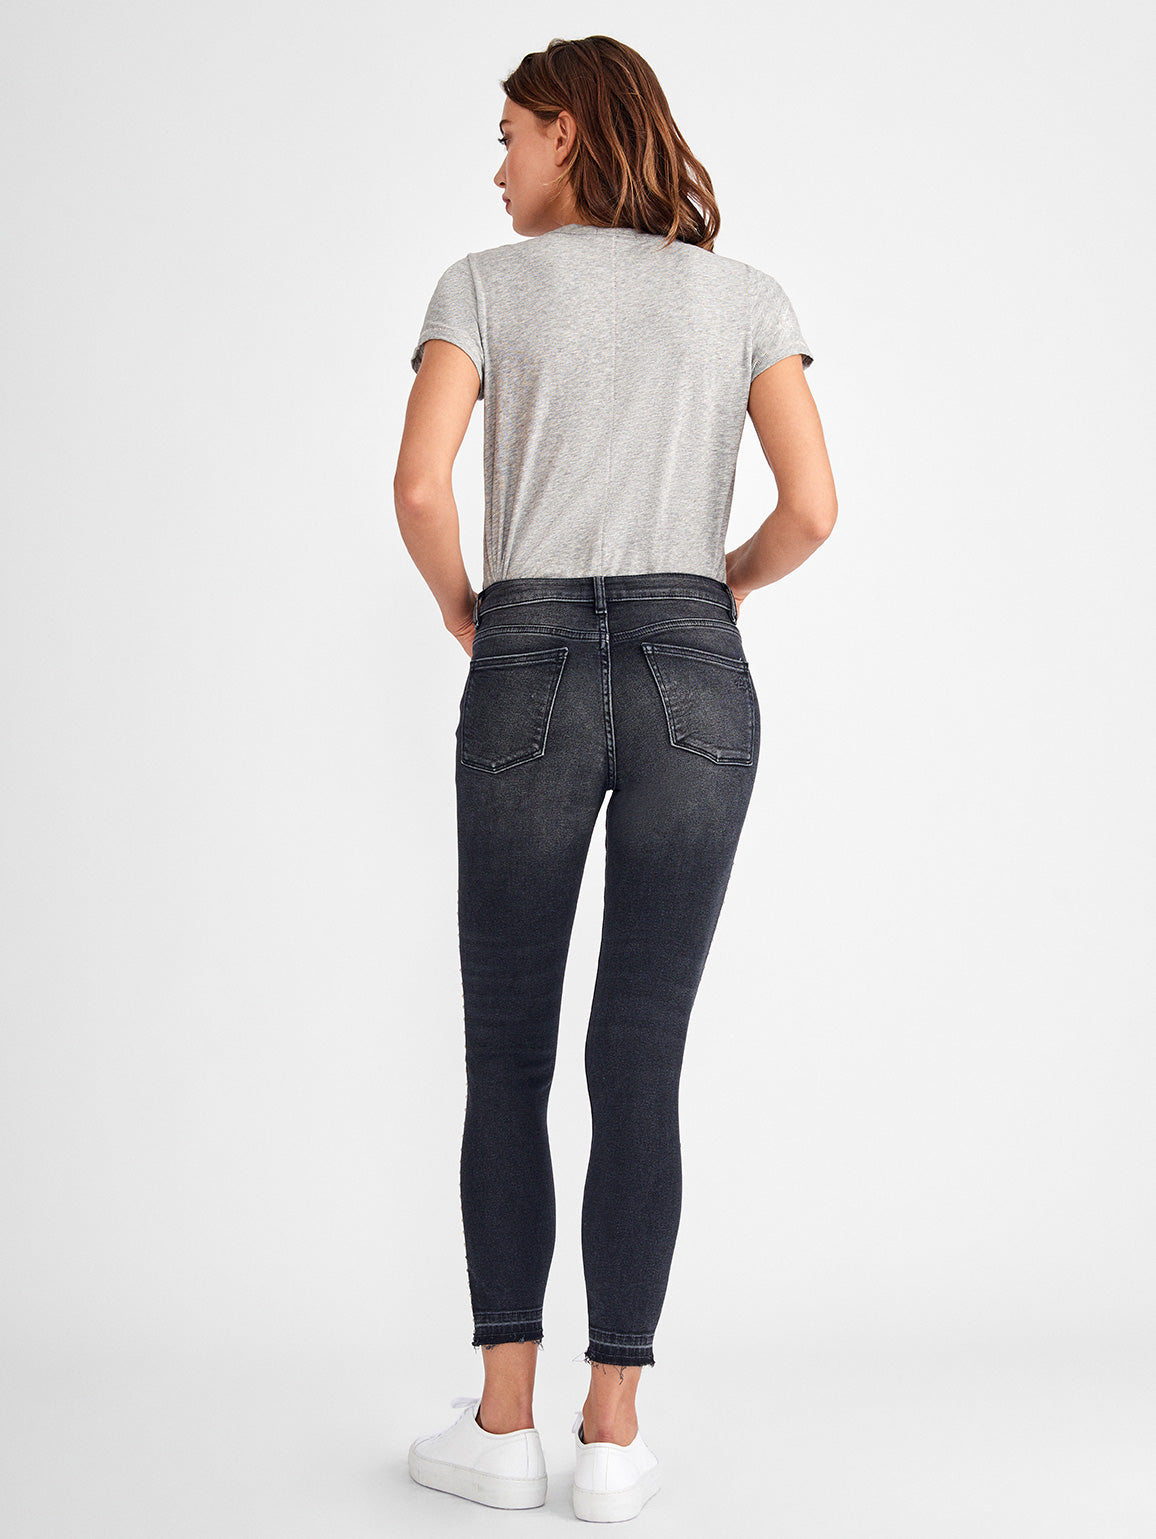 Women - Chrissy Ultra High Rise Skinny | Holden - DL1961